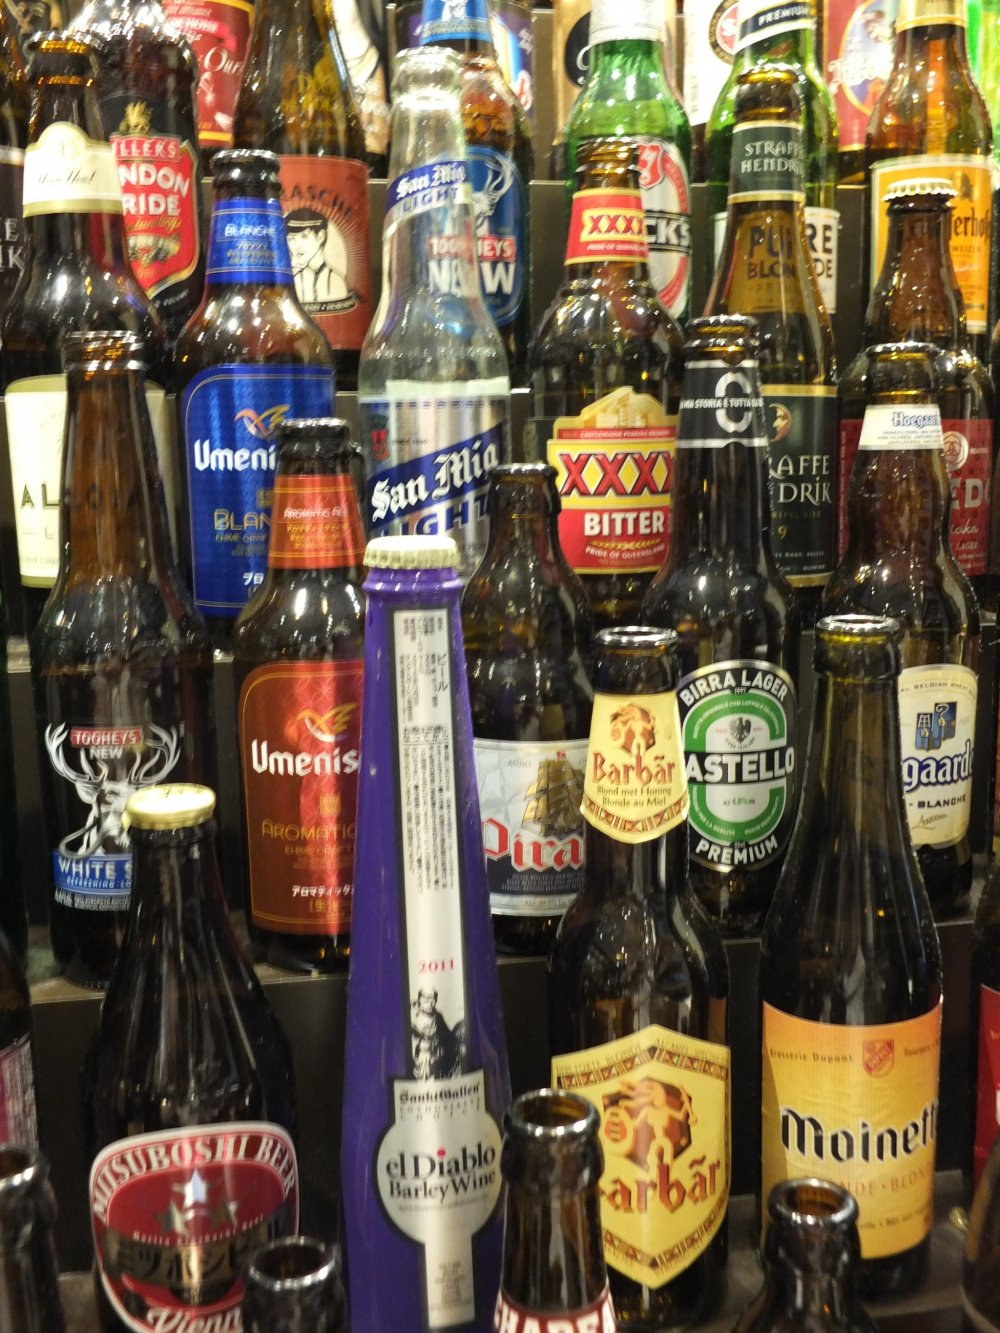 How many of these beers have you tried?